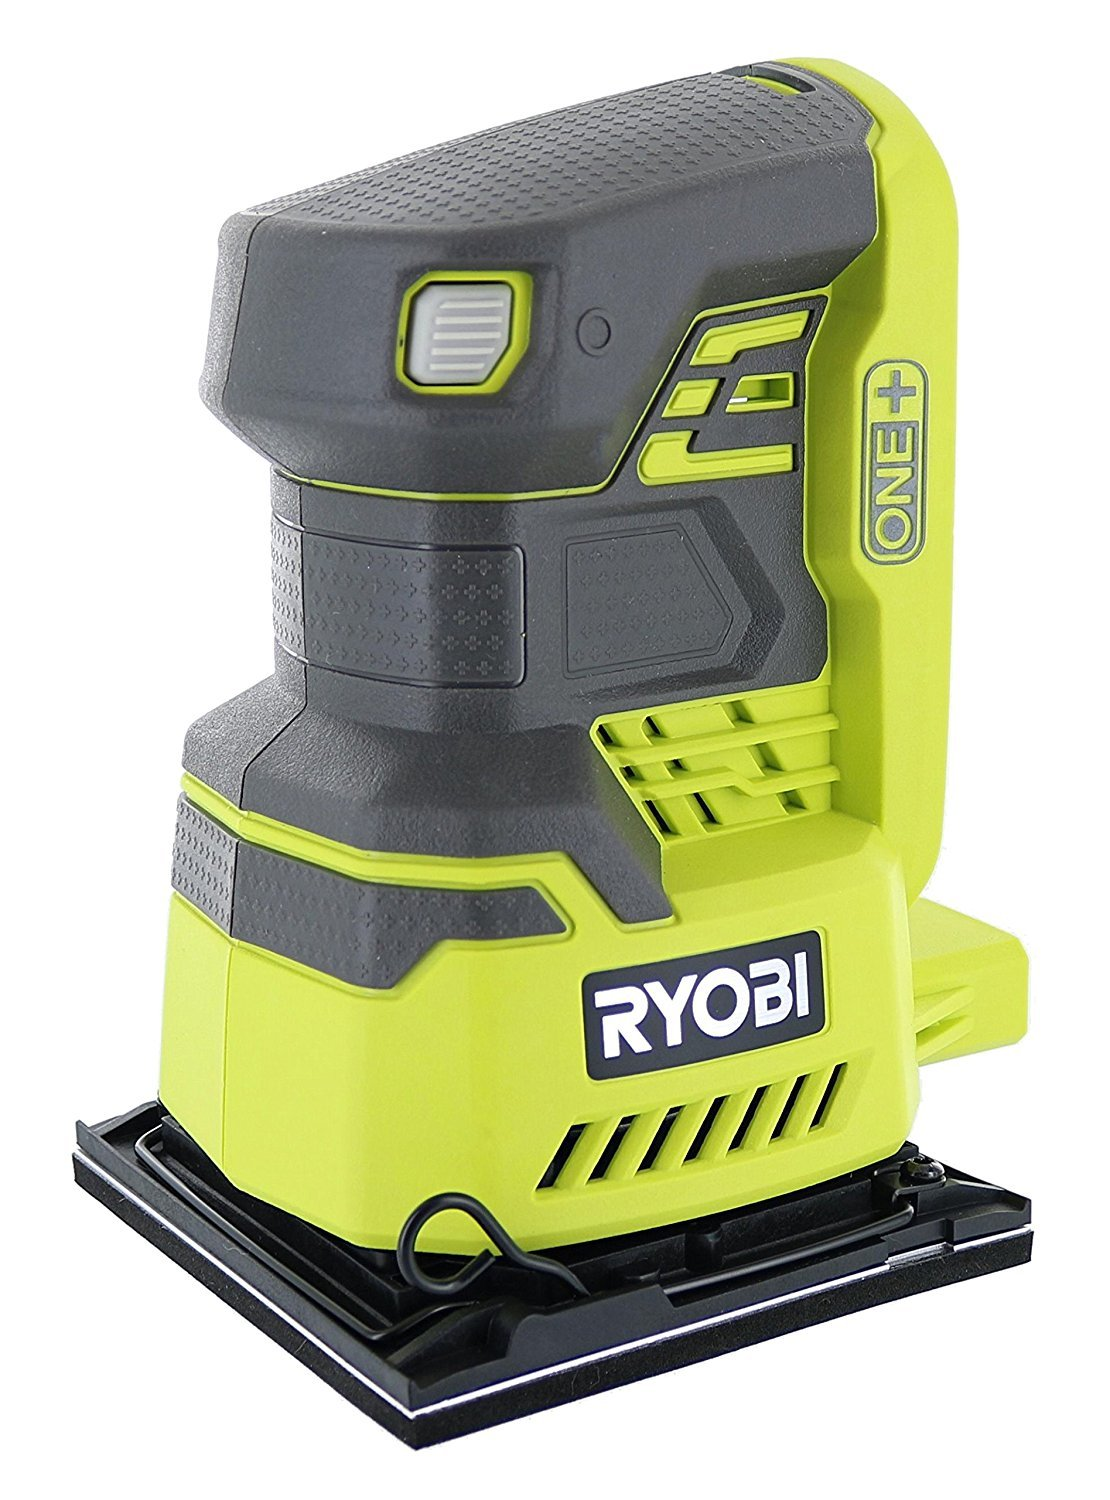 Ryobi P440 One+ 18V Lithium Ion 12,000 RPM 1/4 Sheet Palm Sander w/ Onboard Dust Bag and Included Sanding Pads (Battery Not Included, Power Tool Only) by Ryobi